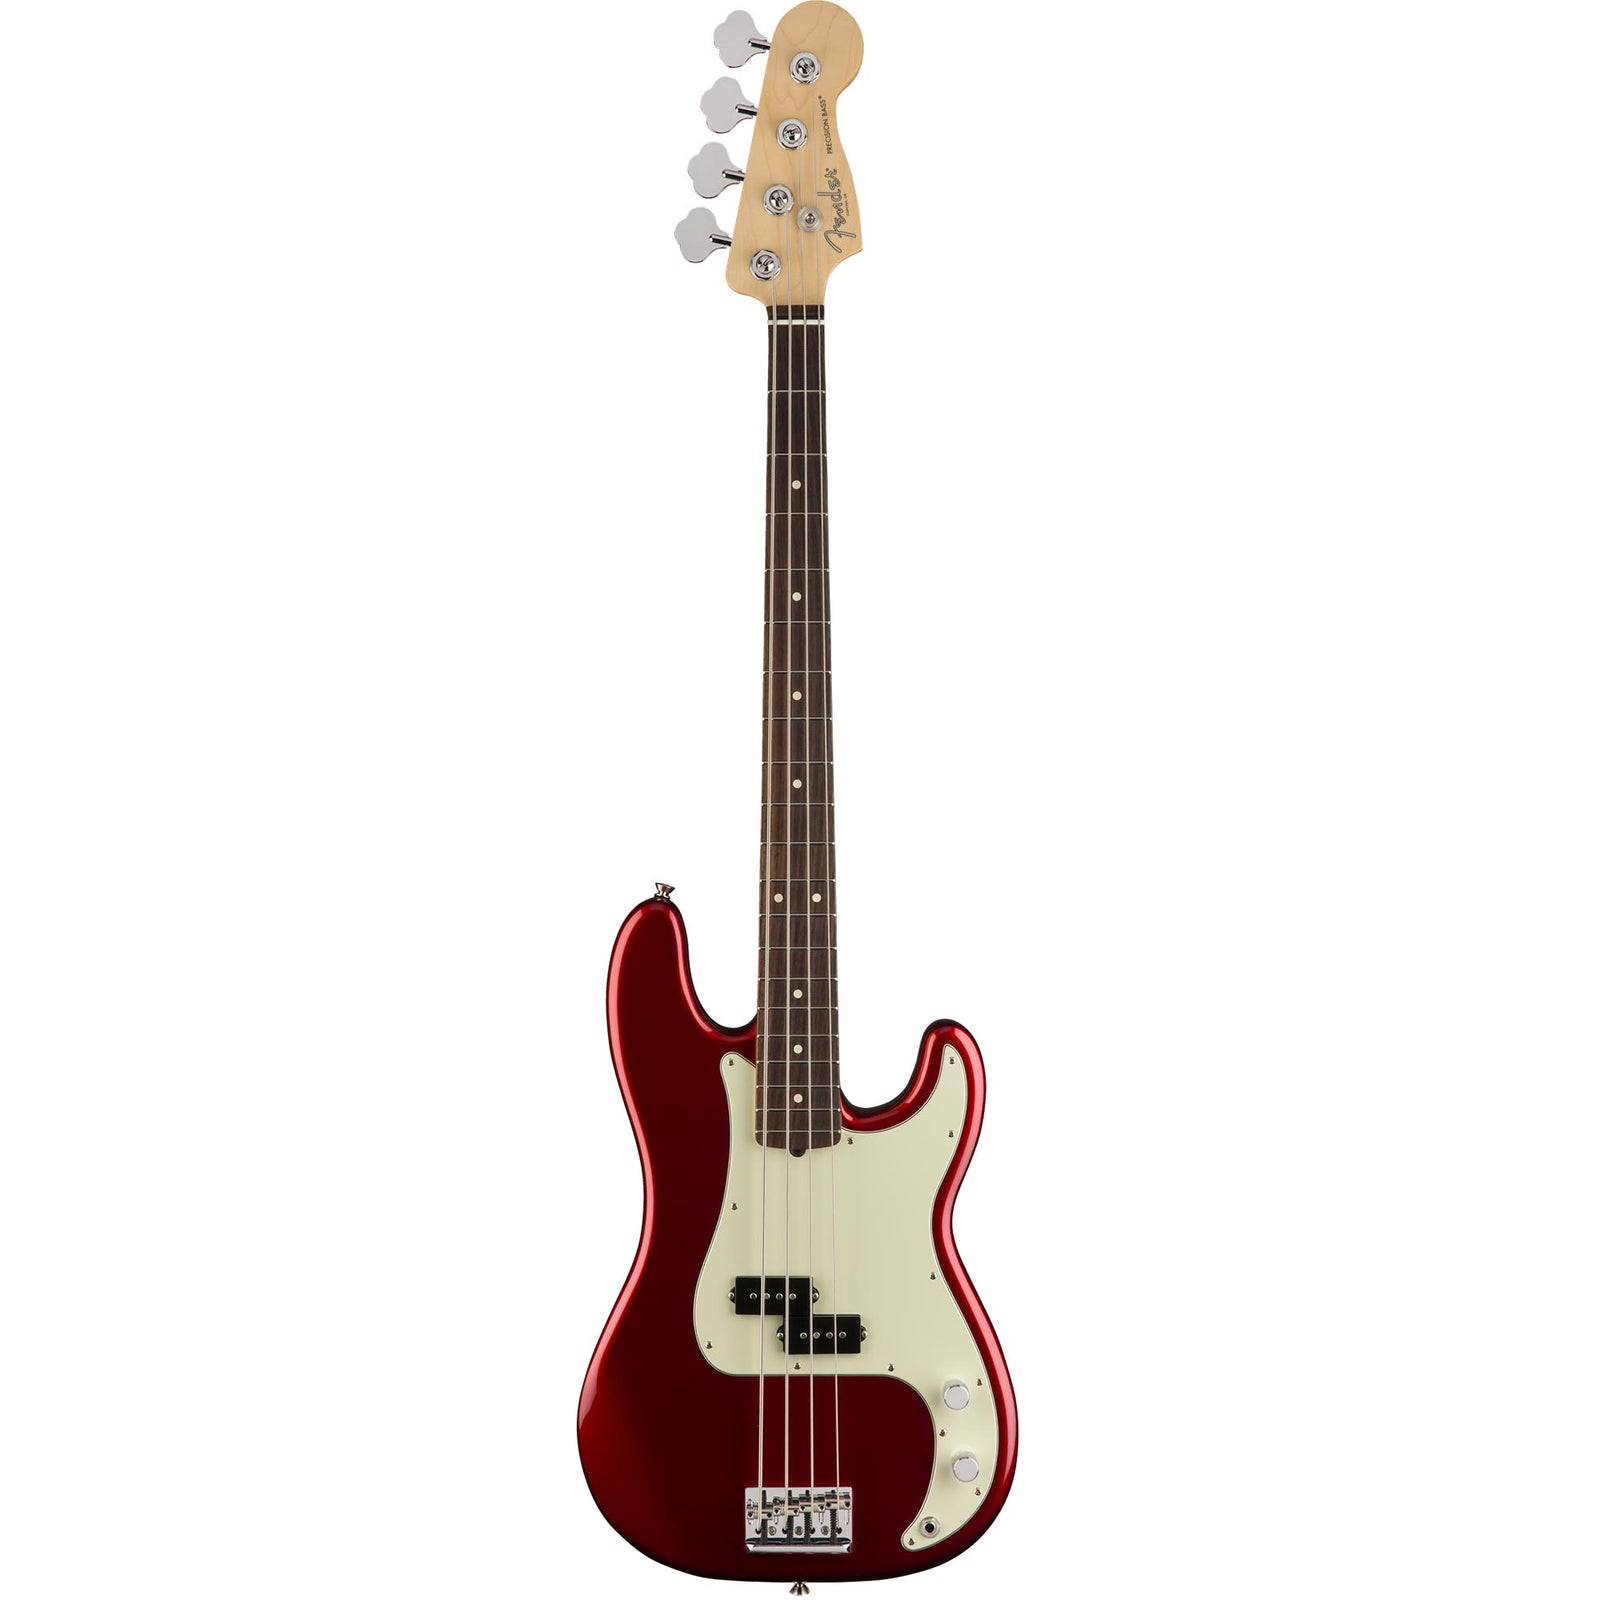 Fender American Pro Precision Bass - Rosewood Fingerboard - Candy Apple